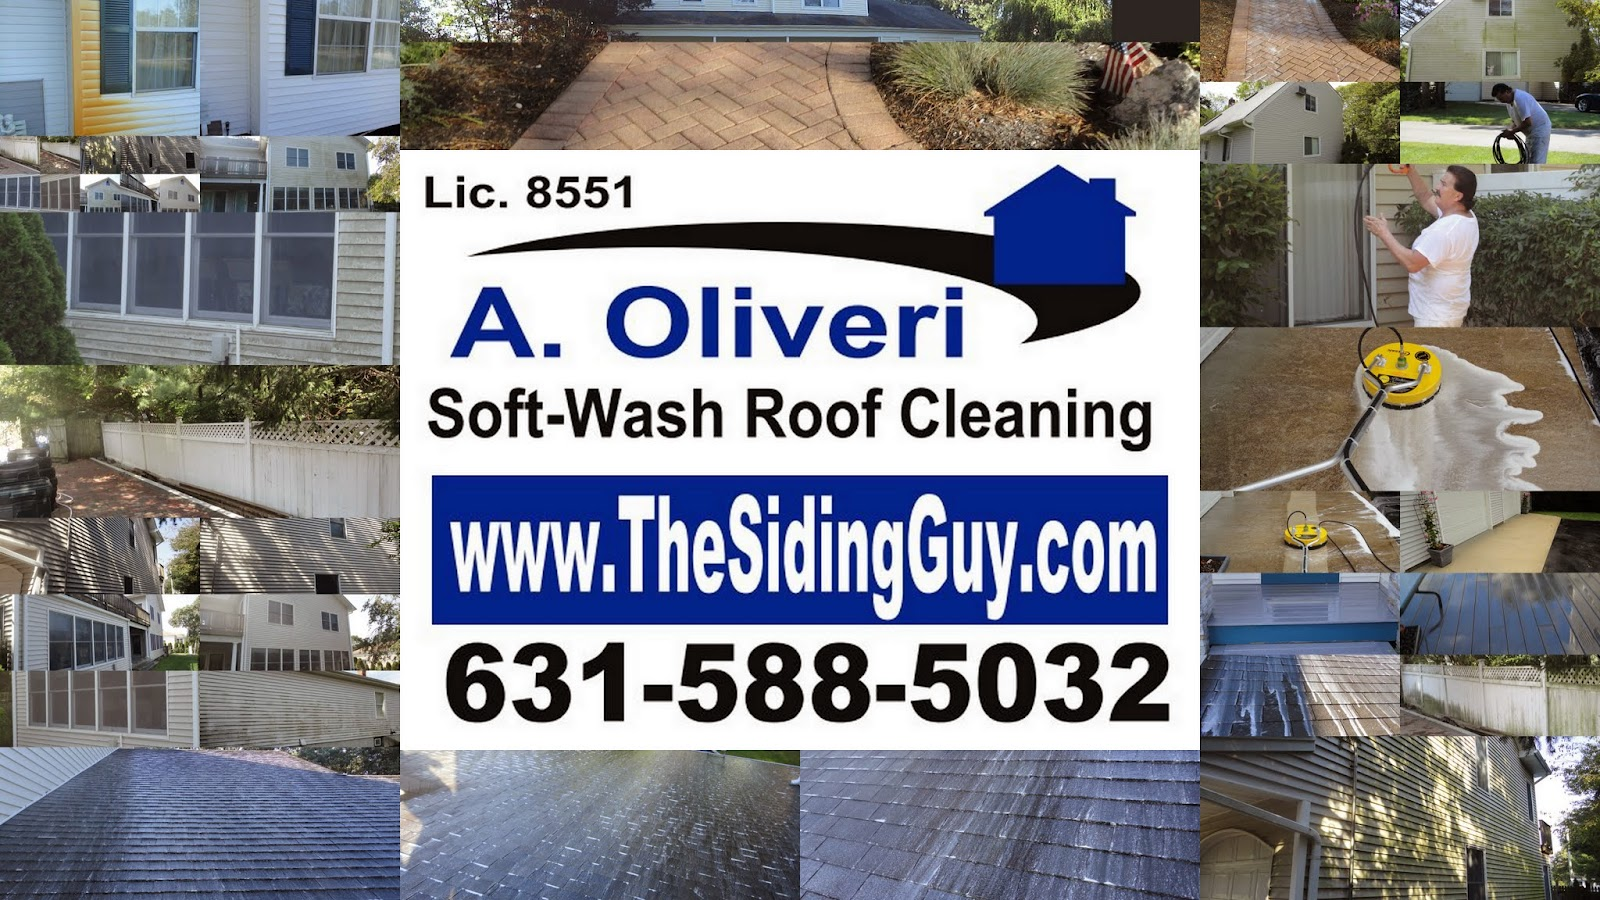 Suffolk County Roof Washing Service, Mattituck Pressure Washing, Cutchogue  Pressure Washing, Moriches Pressure Washing, Hamptons Power Washing  Companies, ...